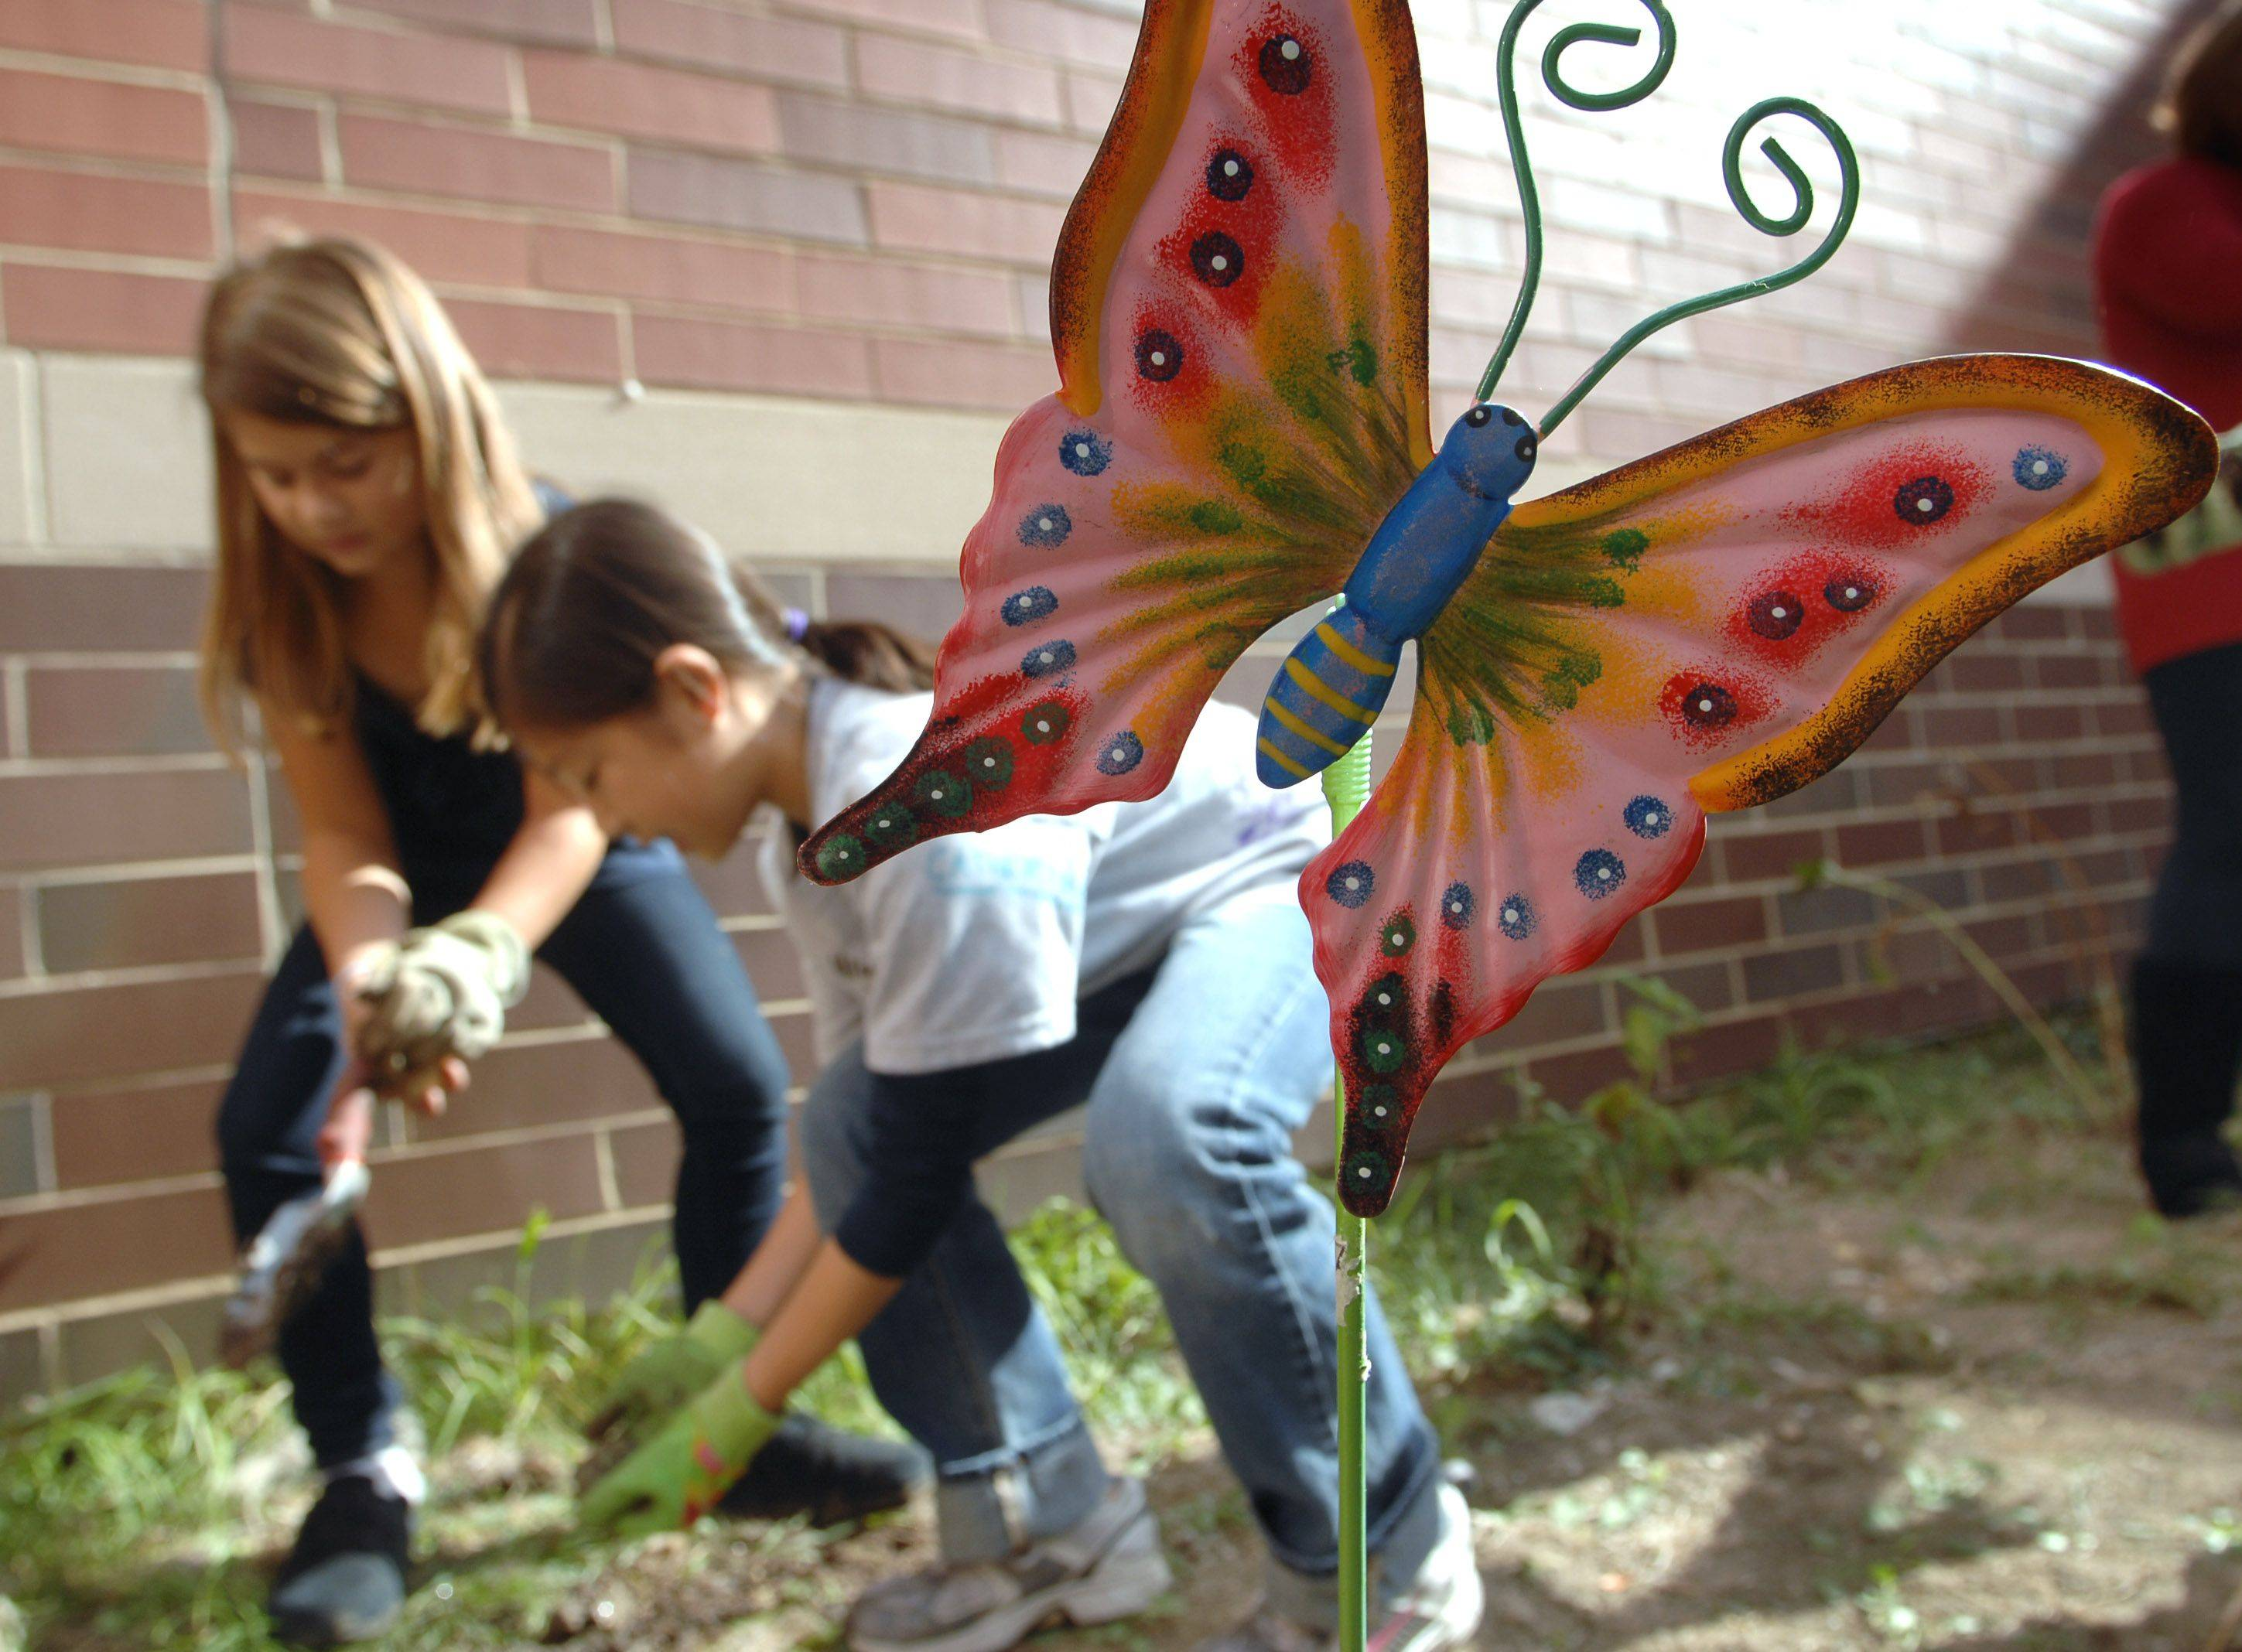 Fifty students at Fremont Intermediate School planted 250 tulip bulbs in the school's butterfly garden. Students Jenna Yefsky, left, and Amelia Lee dig holes for the bulbs Monday.